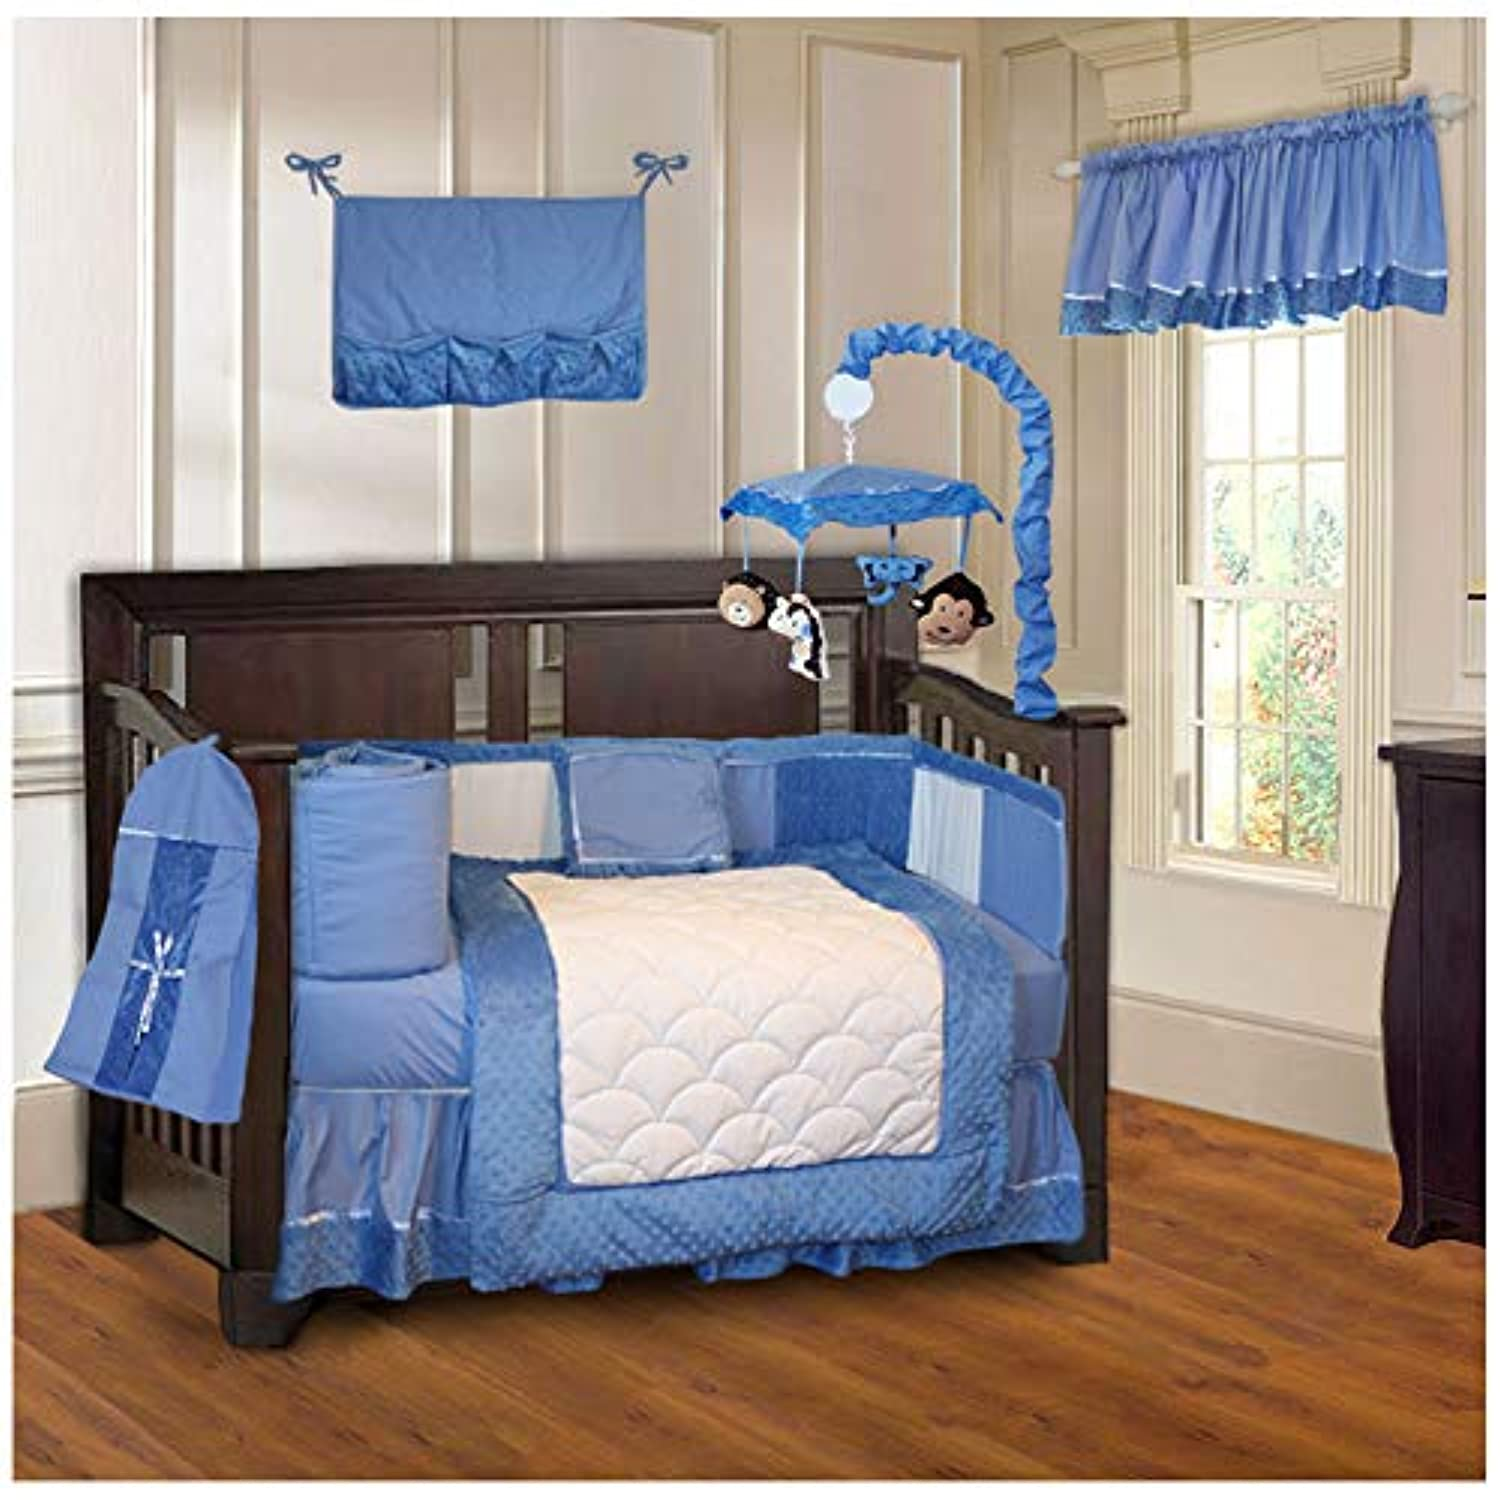 BabyFad Minky Blue 10 Piece Baby Crib Bedding Set by BabyFad